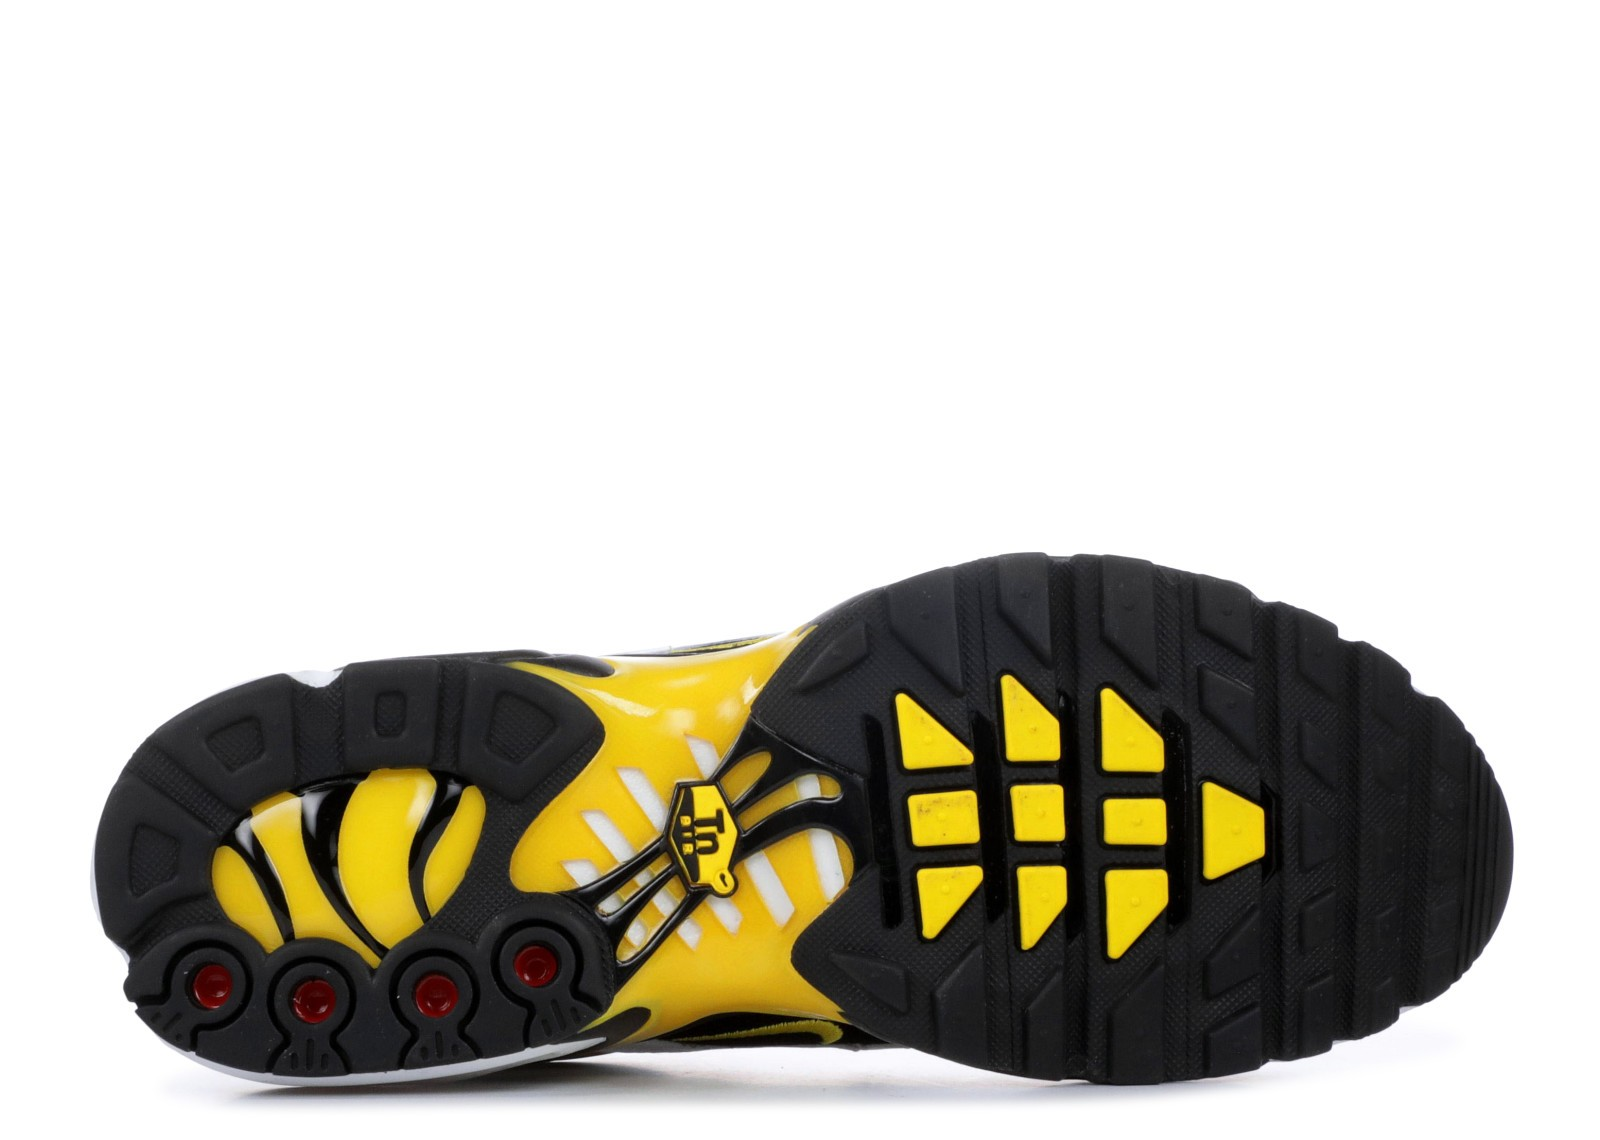 Nike Air Max Plus 97 Tuned Frequency Pack Tour Yellow White Black